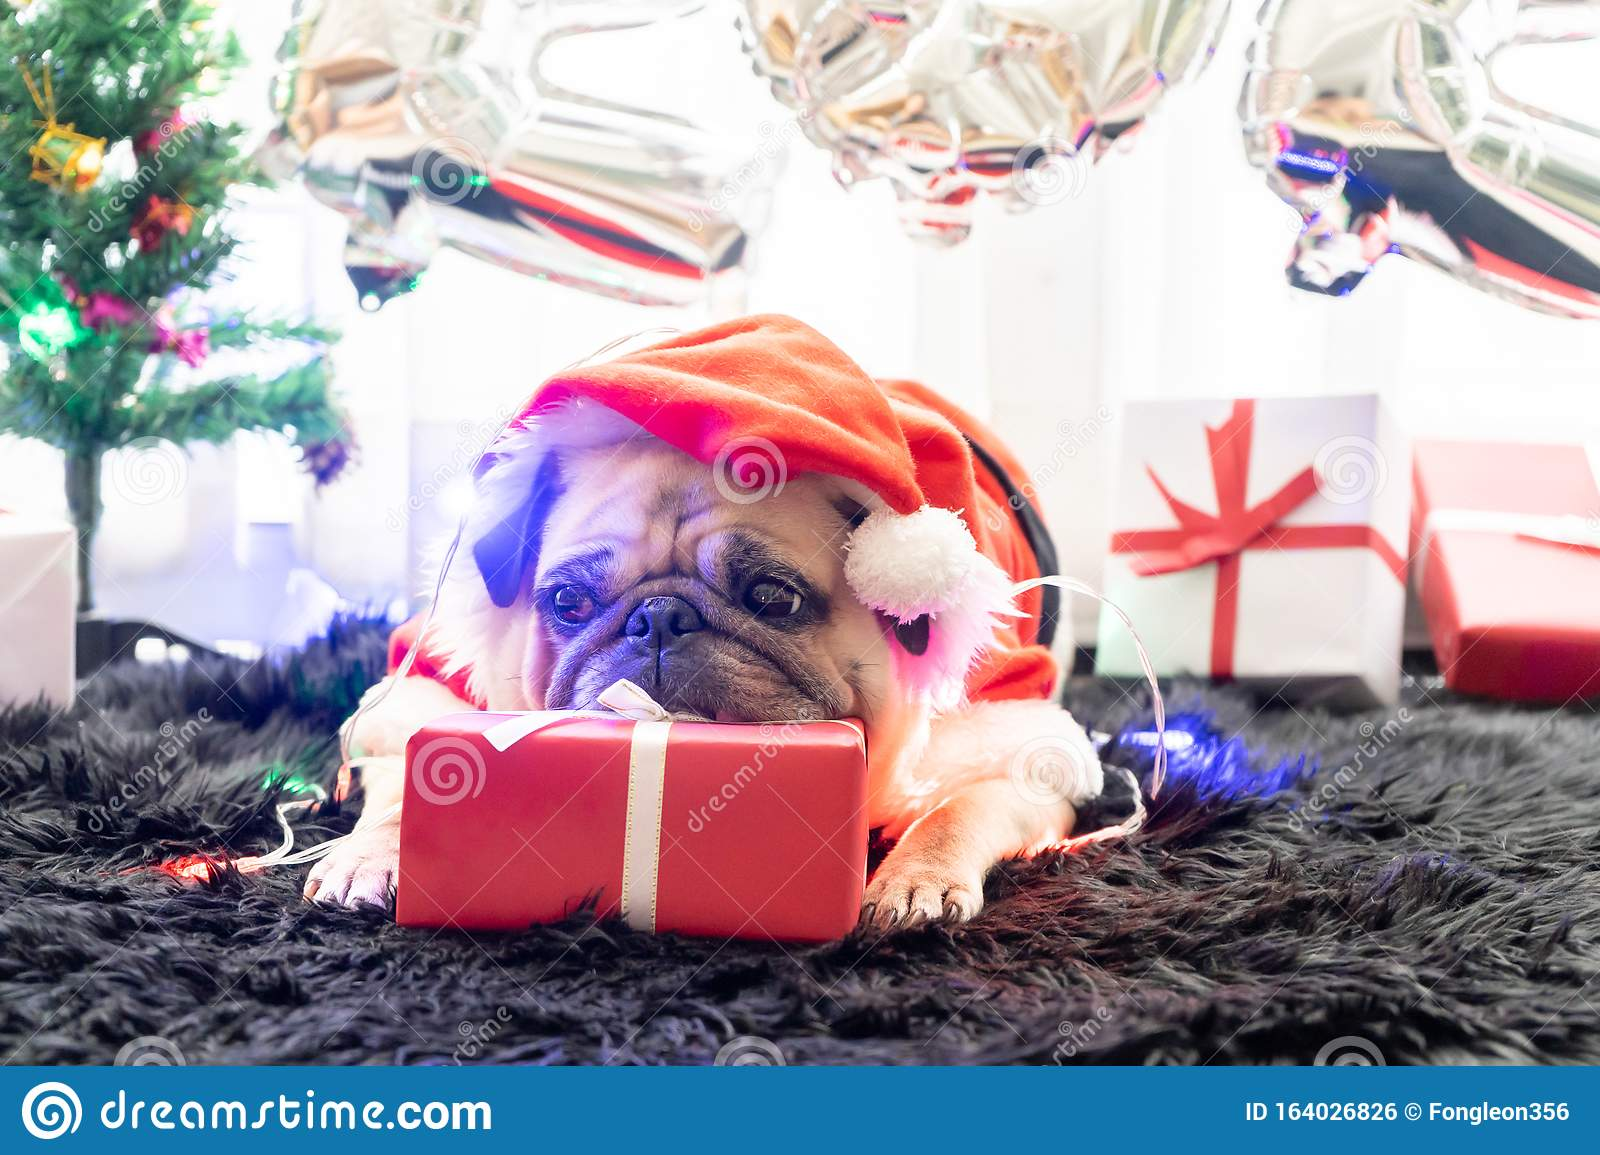 Puppy For Christmas 2020 Happy New Year 2020, Merry Christmas, Holidays And Celebration